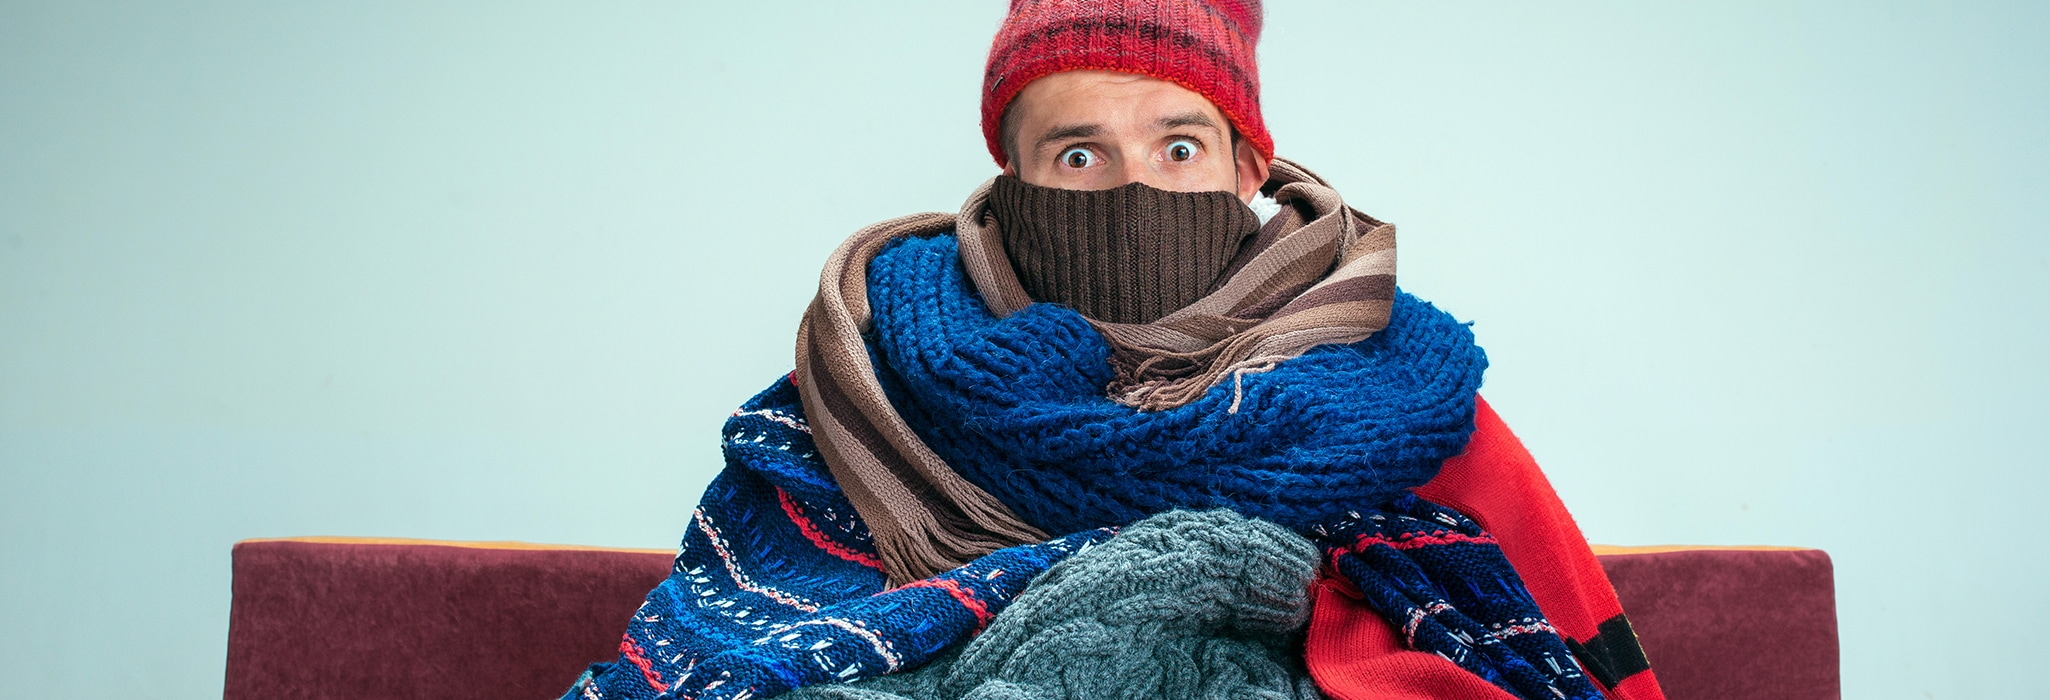 Person bundled up in warm clothing.